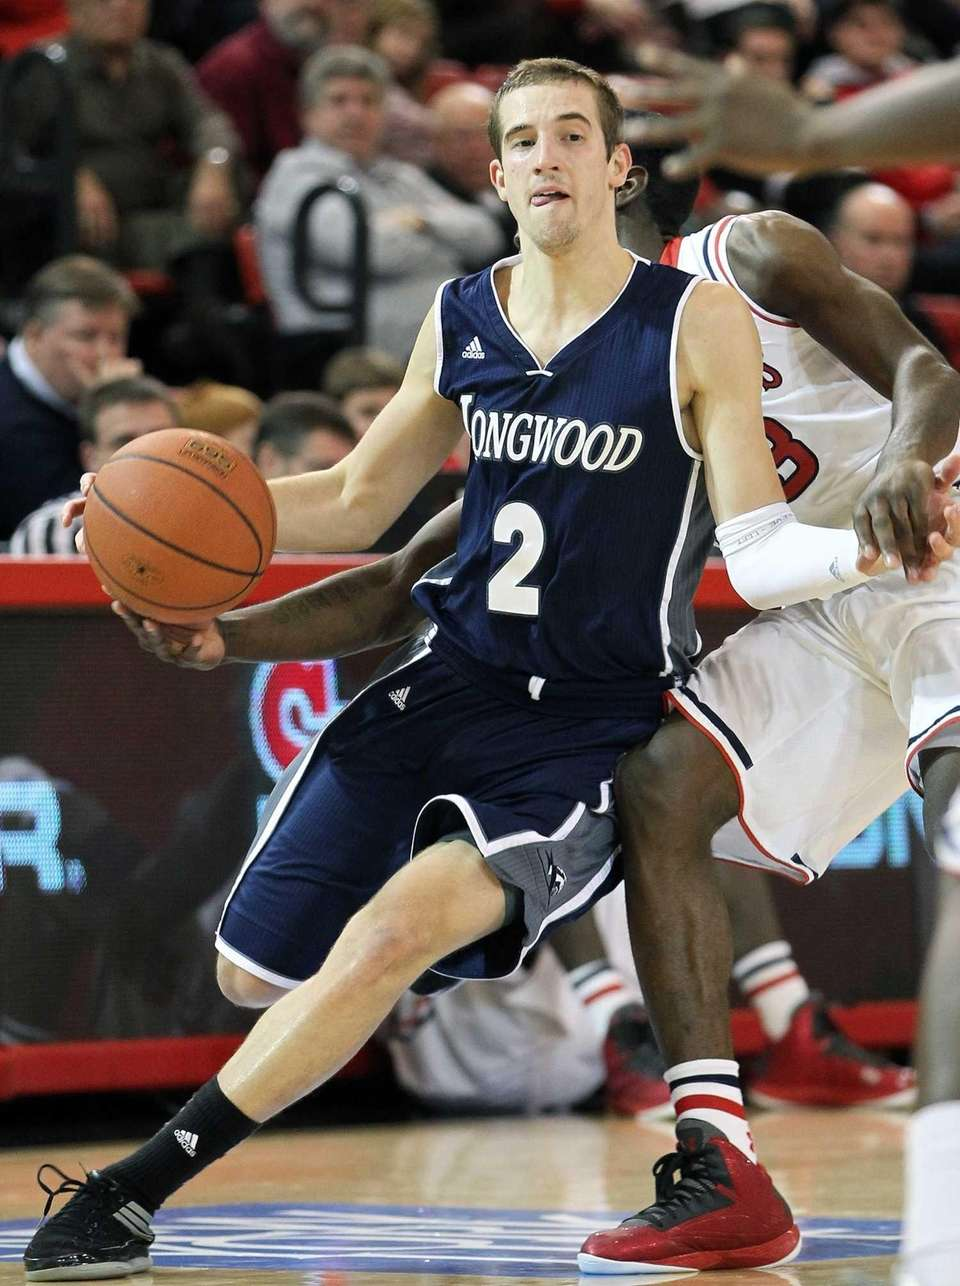 Longwood point guard Lucas Woodhouse dribbles the ball